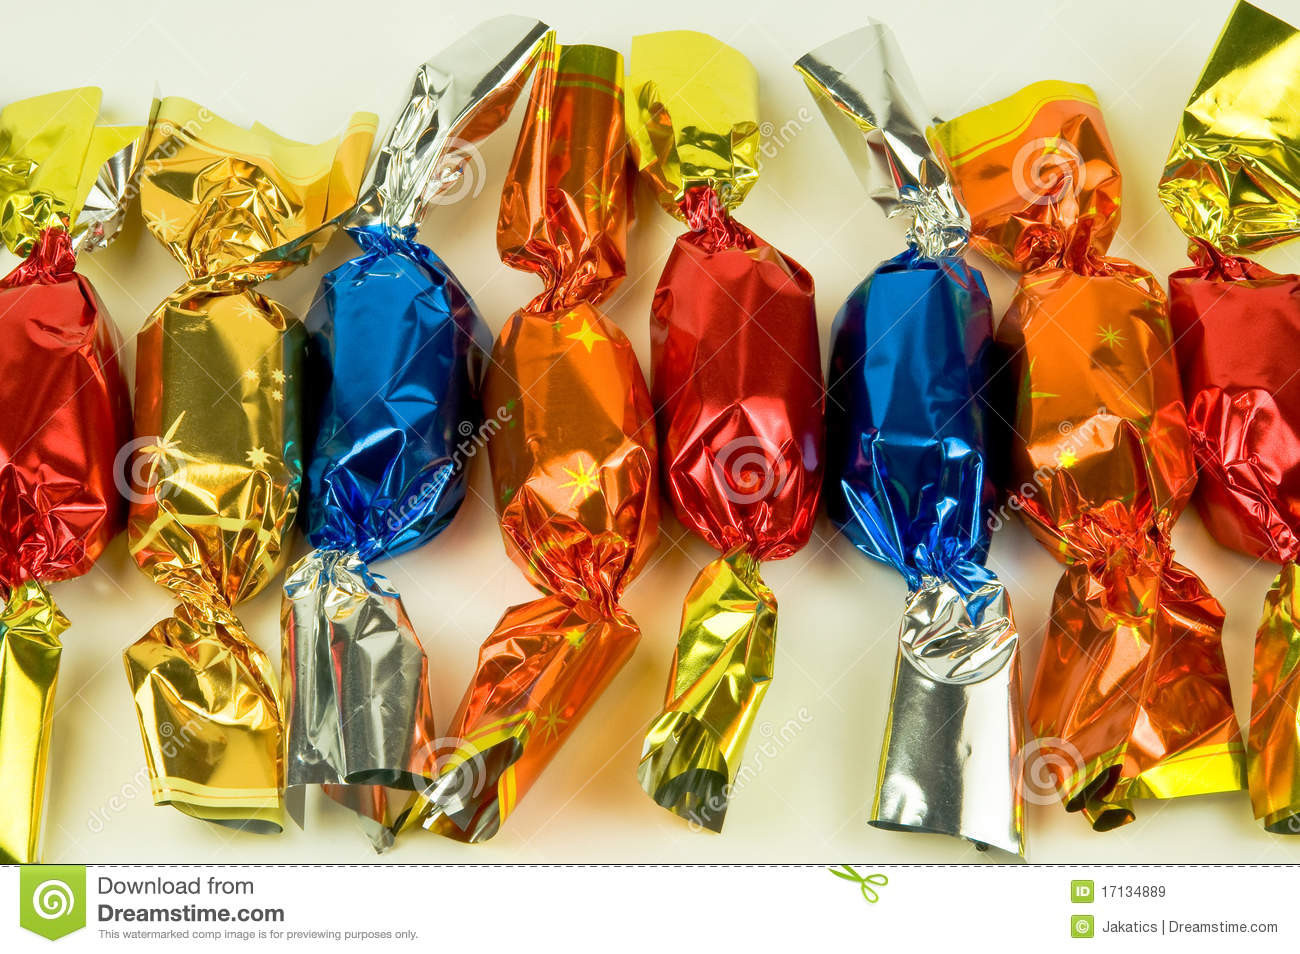 Hungarian Christmas Candy  Colorful Christmas Can s Royalty Free Stock